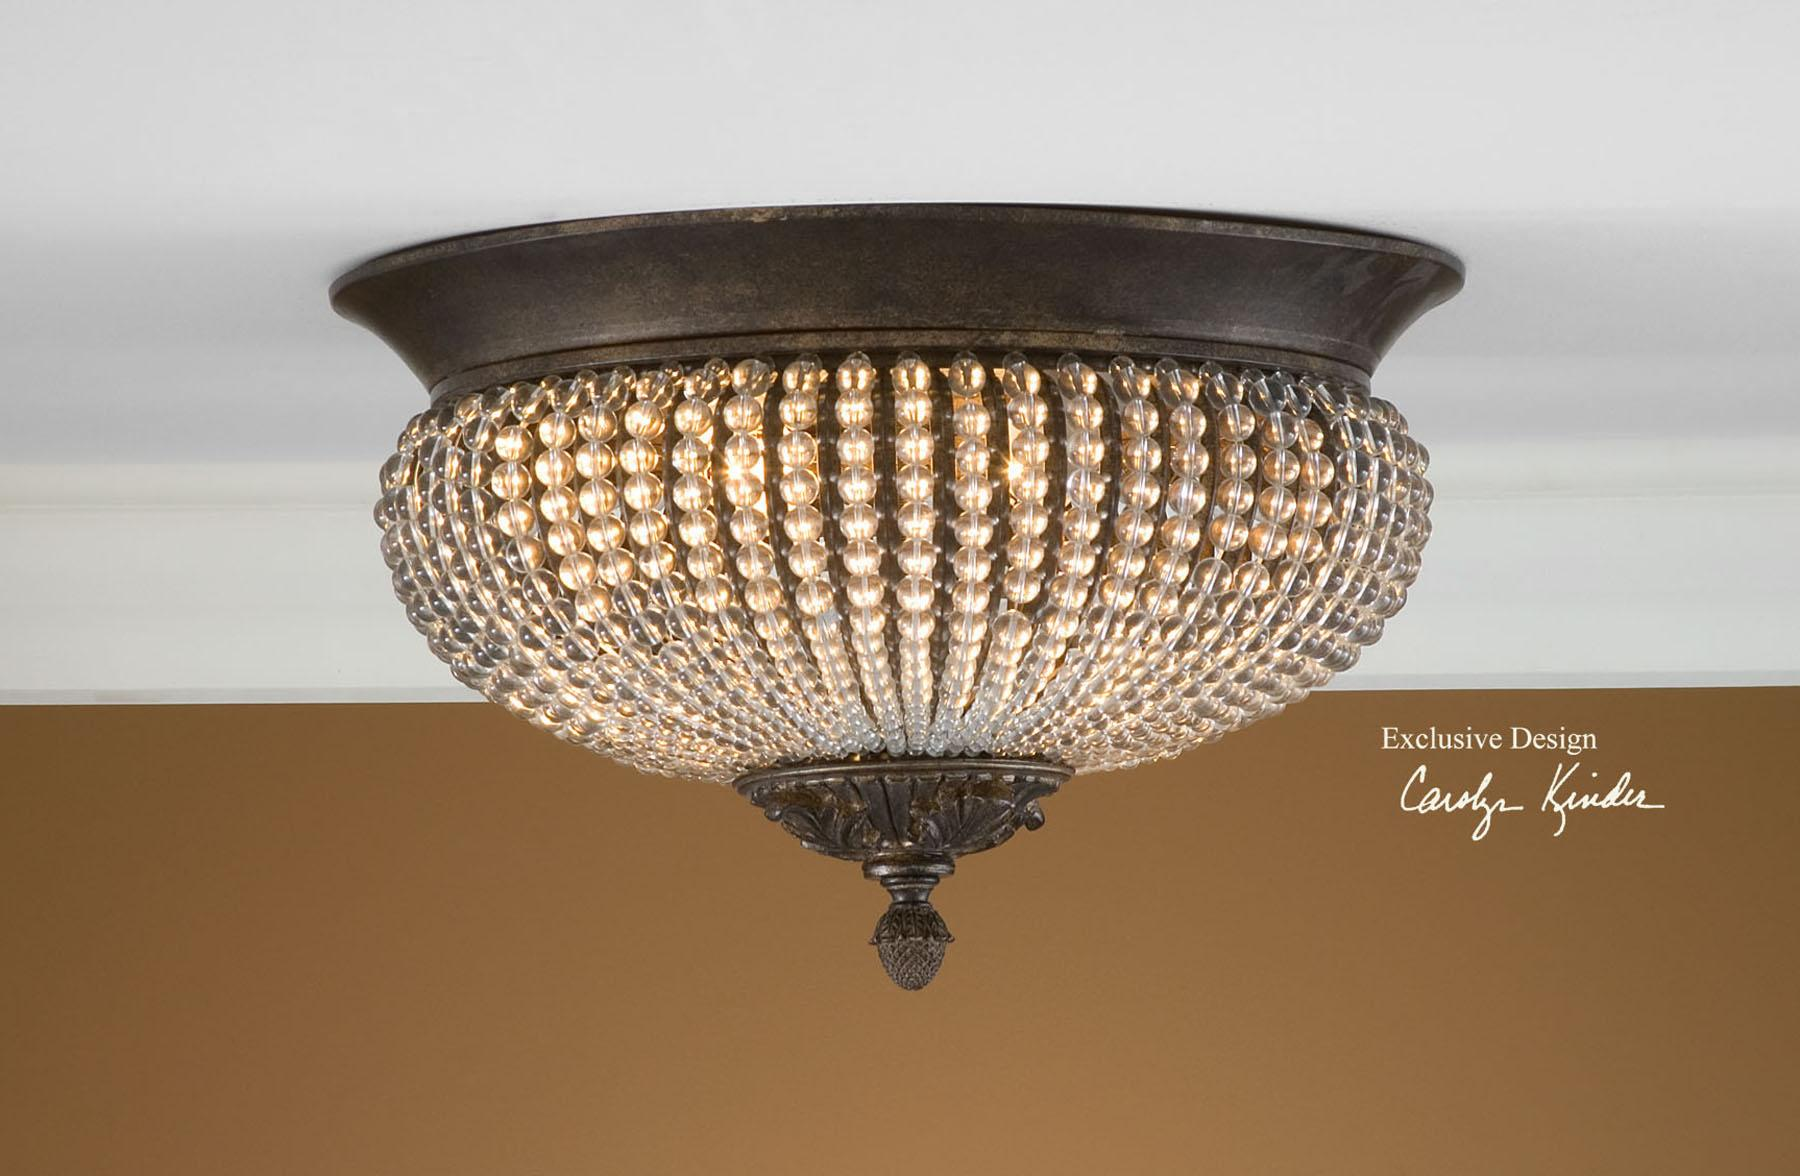 Uttermost Lighting Fixtures Cristal De Lisbon Flush Mount - Item Number: 22222